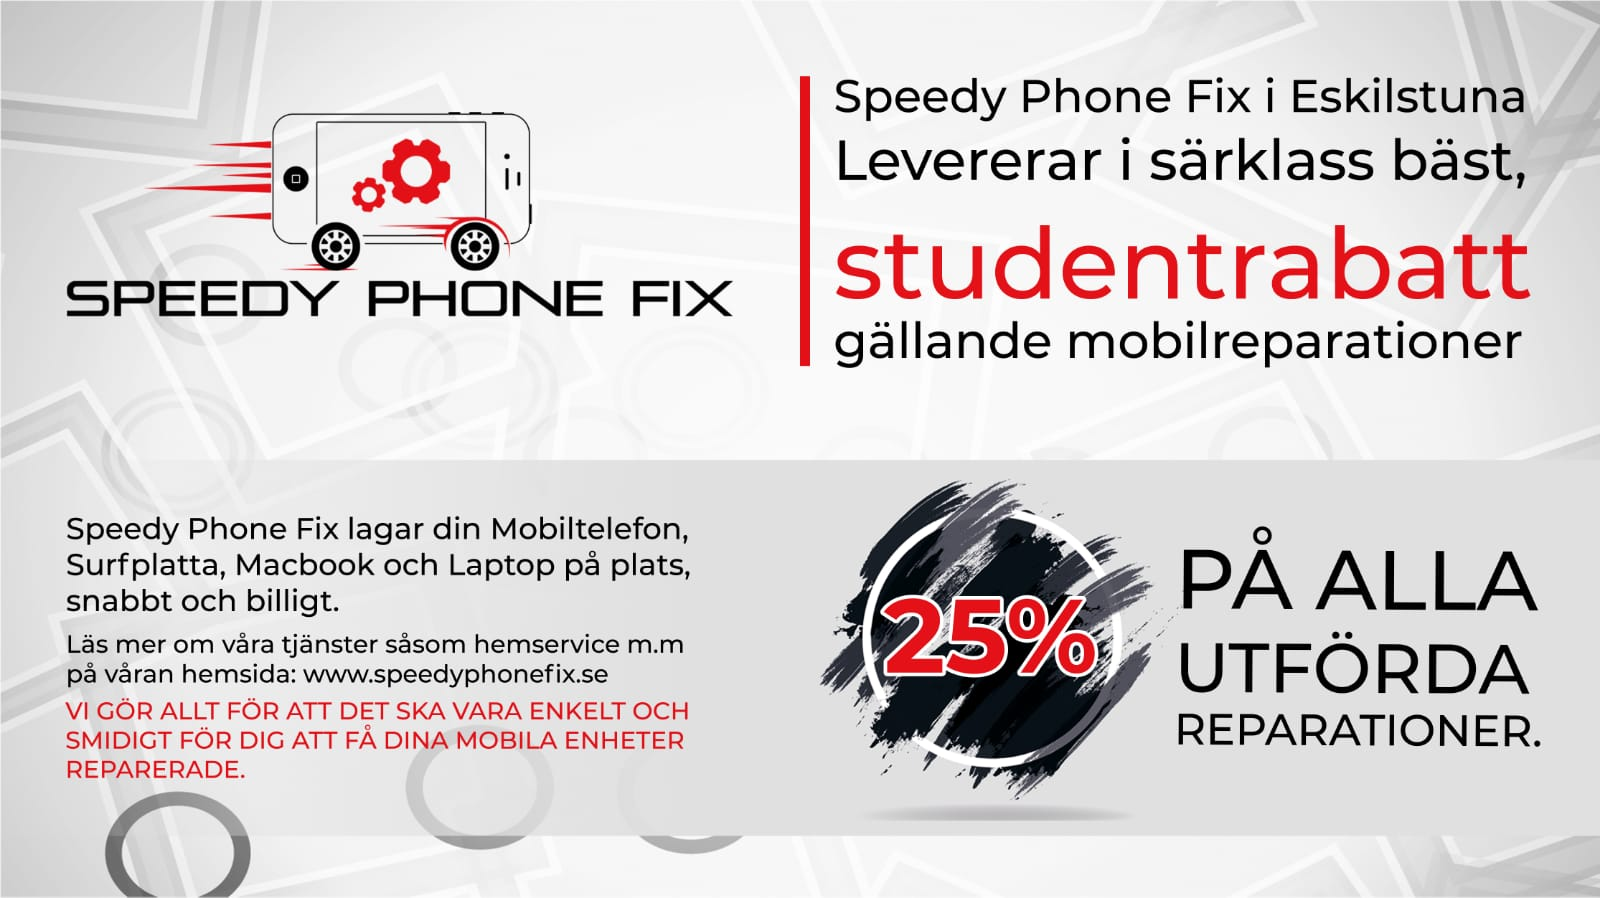 https://www.speedyphonefix.com/wp-content/uploads/2018/11/Speedy-erbjudande.jpeg